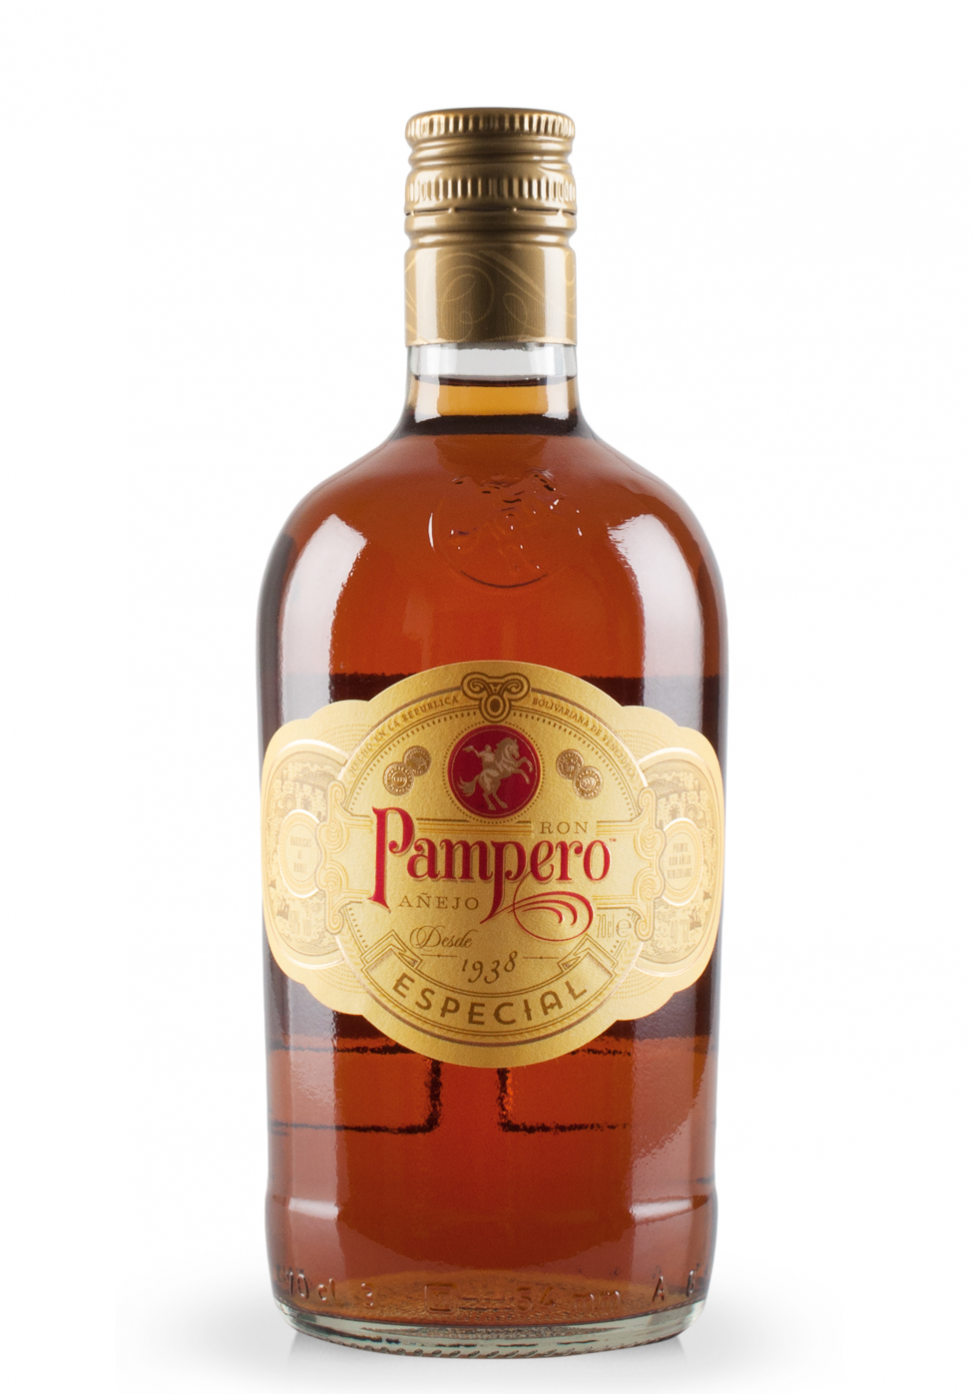 Rom Pampero, Anejo Especial (0.7L)